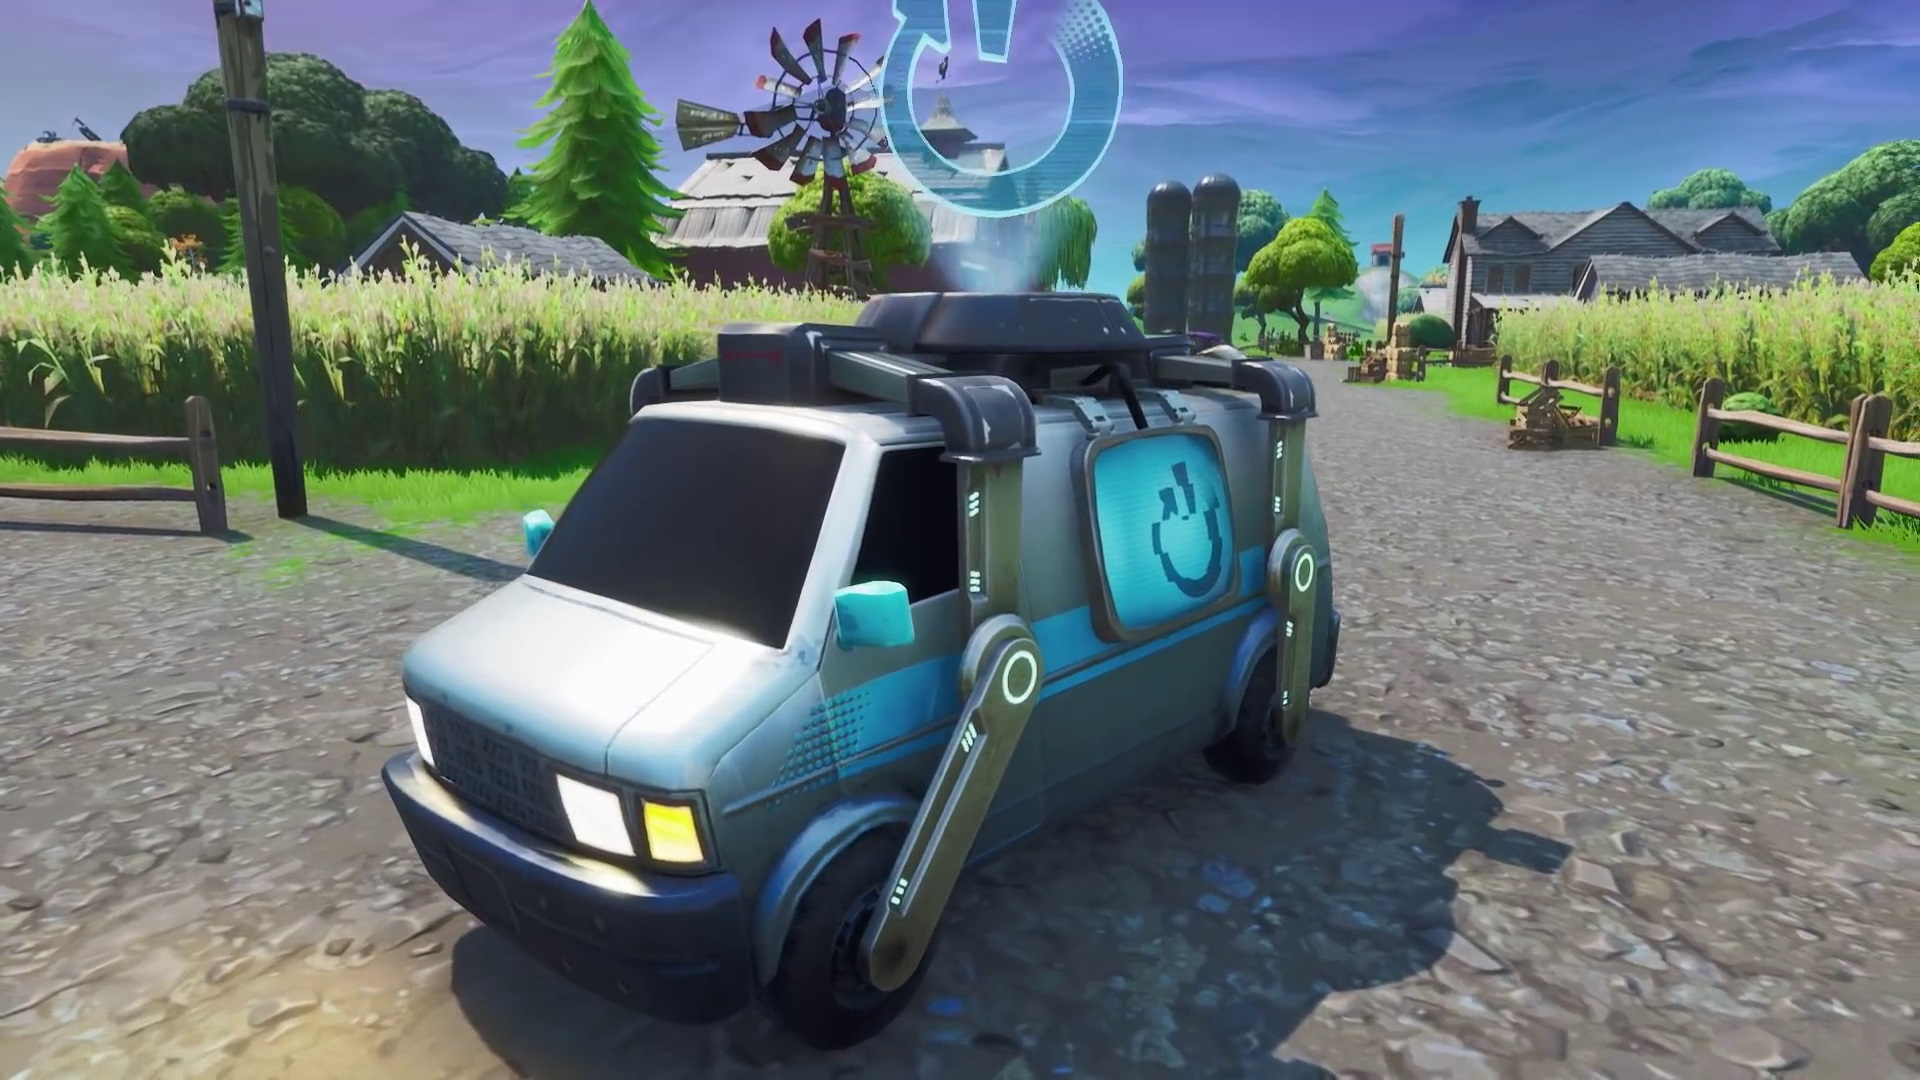 Epic Games plans to take Unreal Engine to the automotive industry